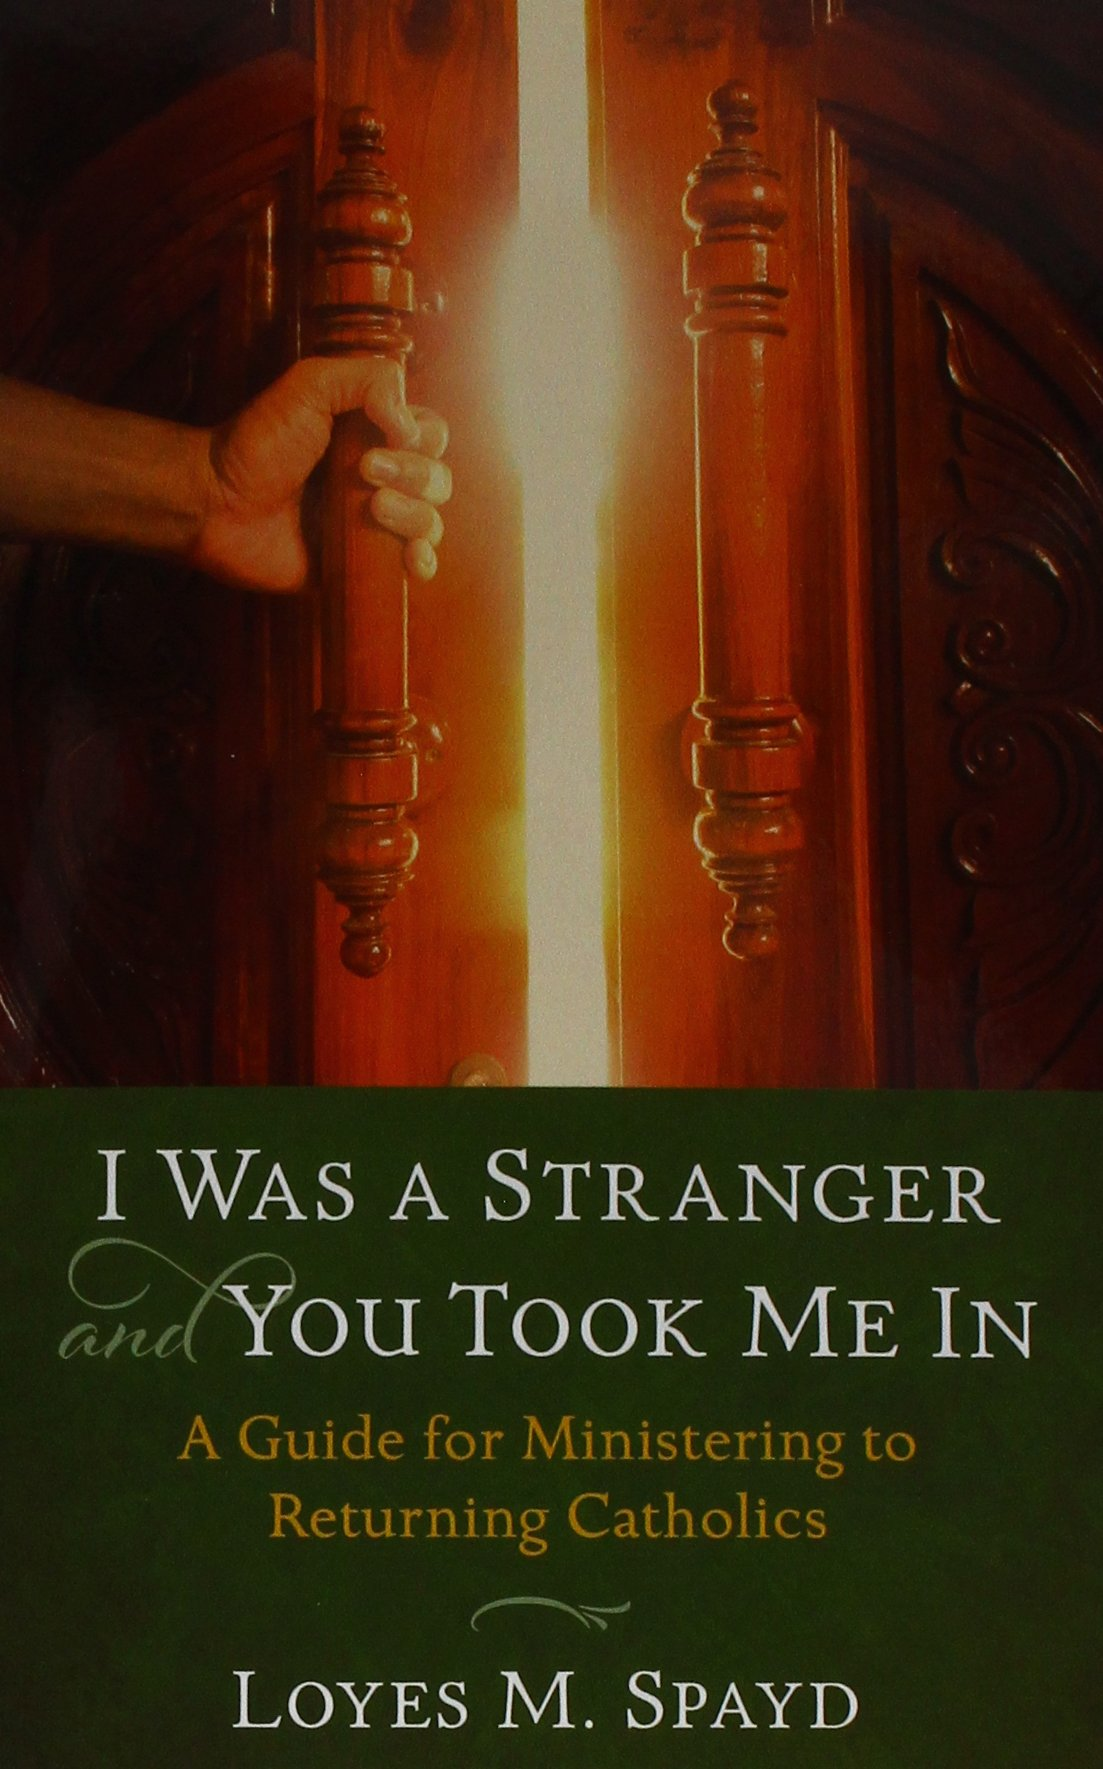 I Was a Stranger and You Took Me in: A Guide for Ministering to Returning Catholics ebook